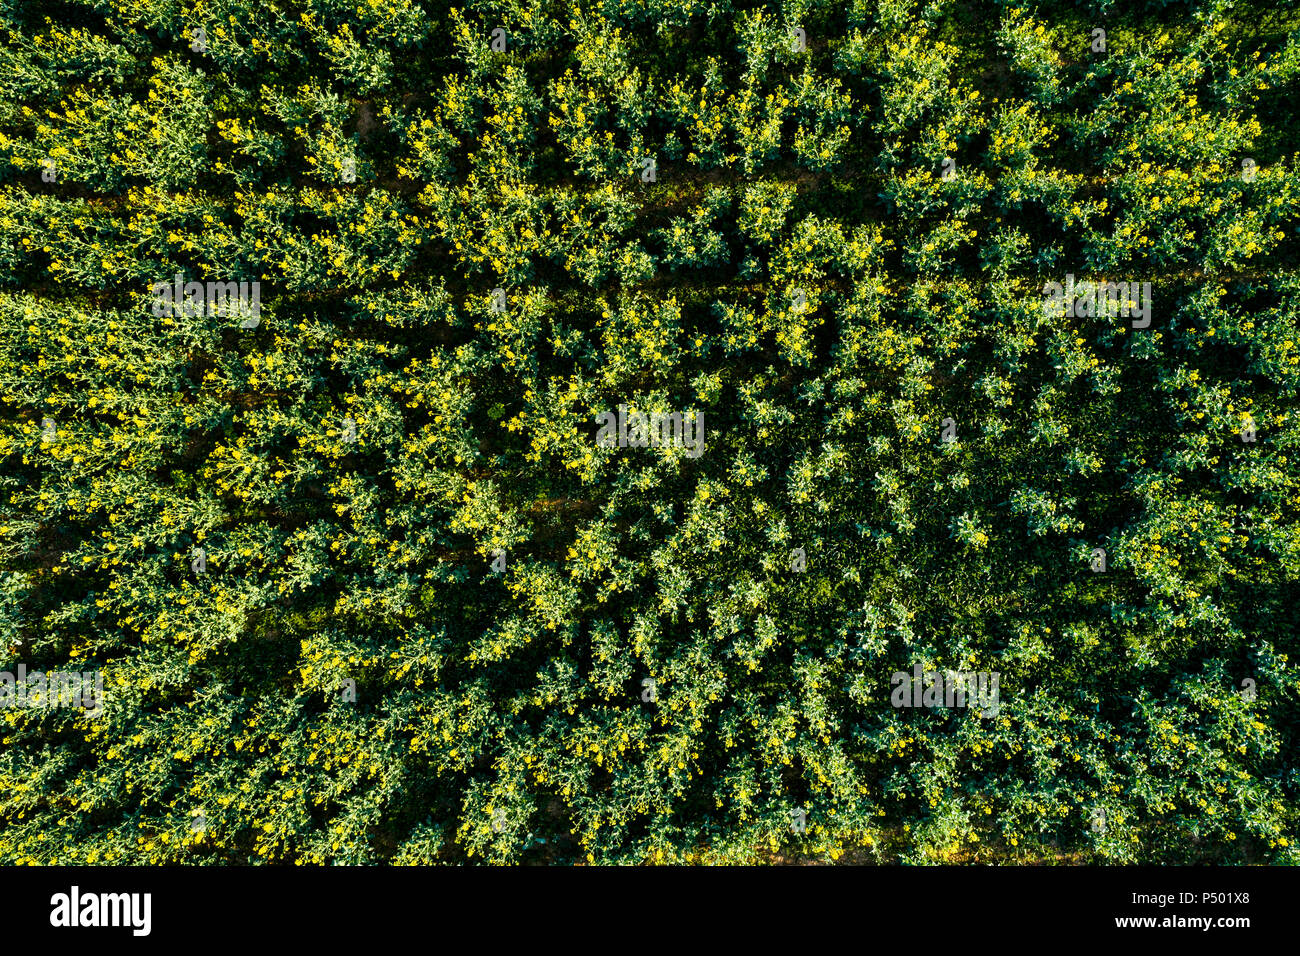 Germany, Baden-Wuerttemberg, Swabian Alb, Aerial view of Schurwald in spring - Stock Image